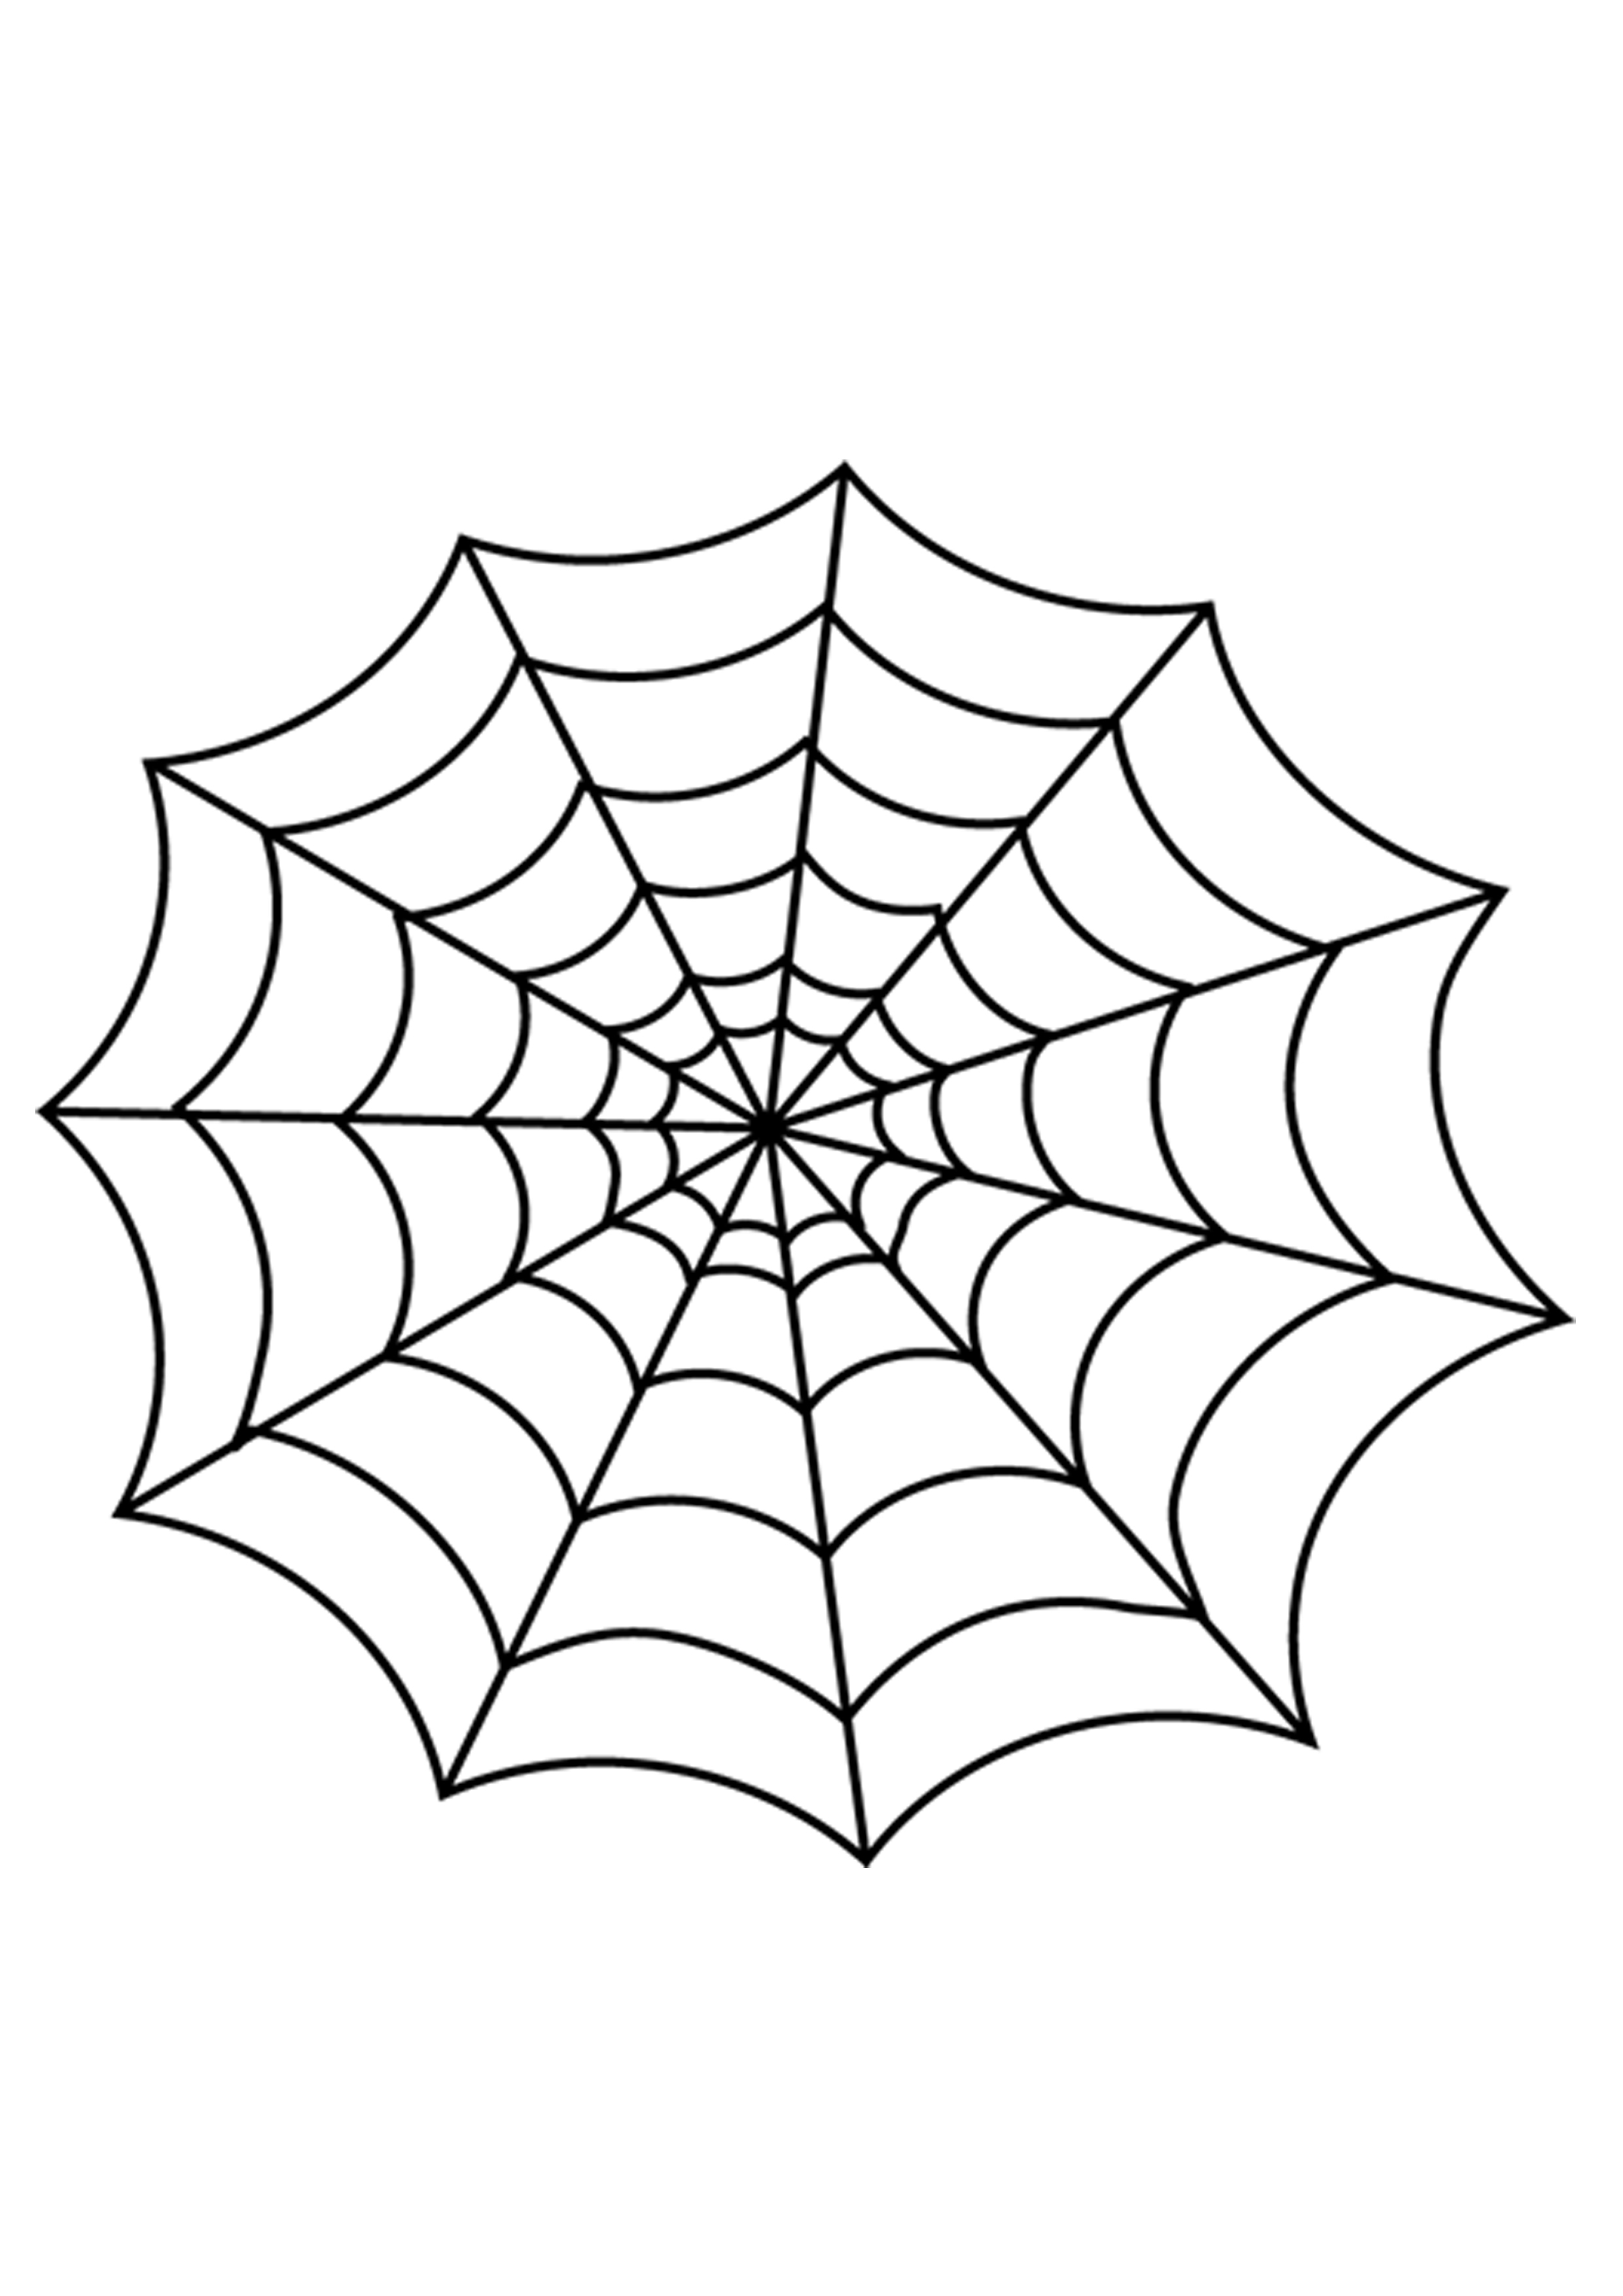 Halloween Spider Webs To Printable To   Clipart Crossword - Free Printable Spider Web